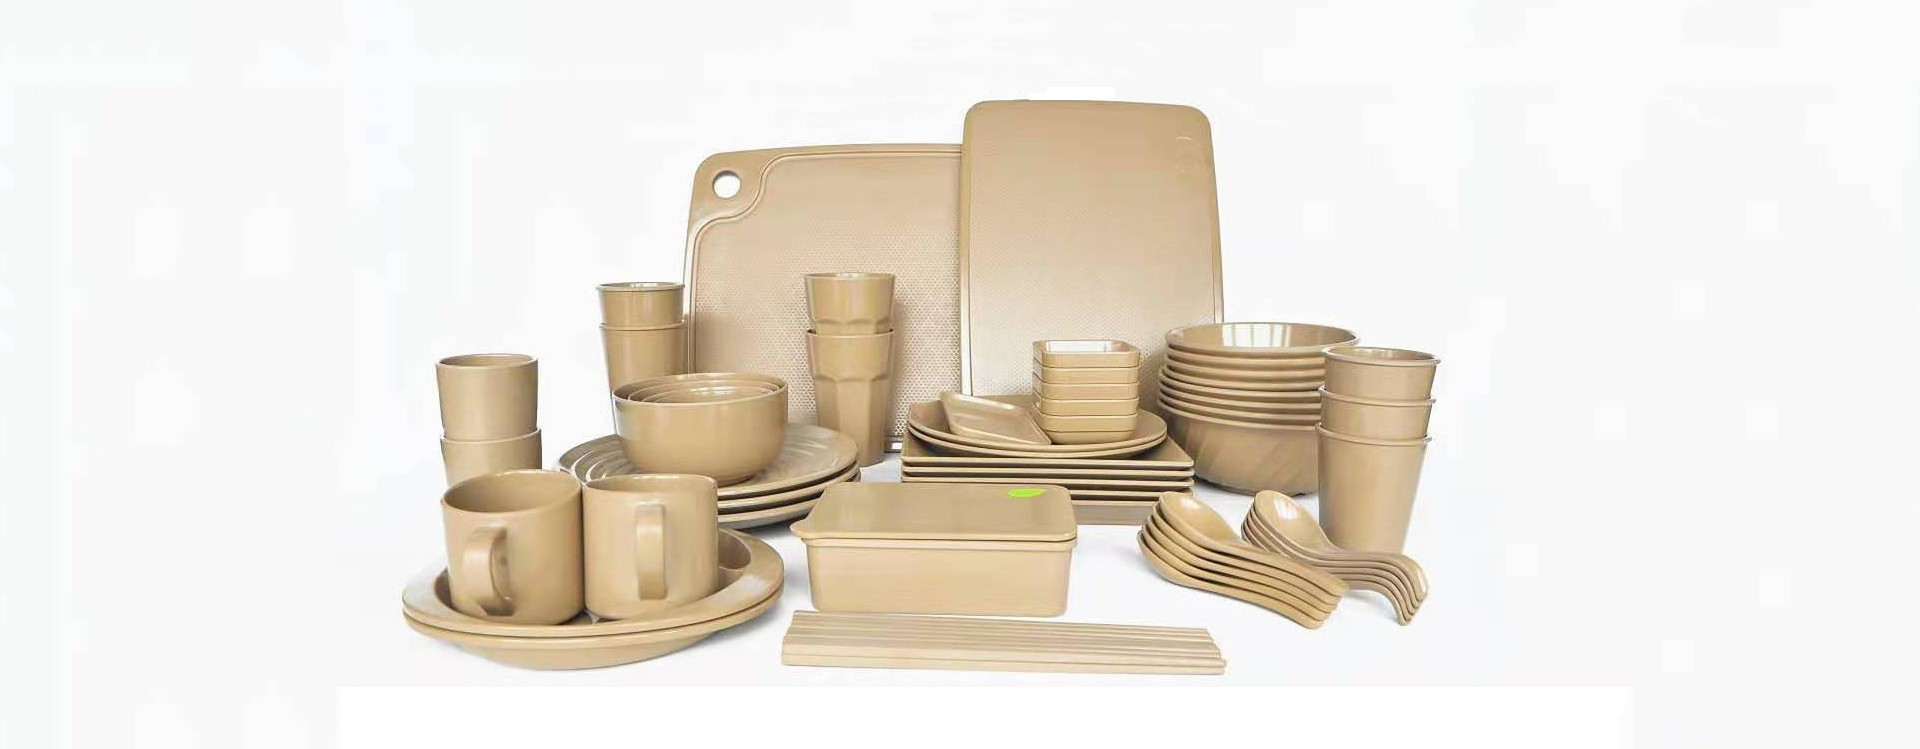 rice husks family tableware